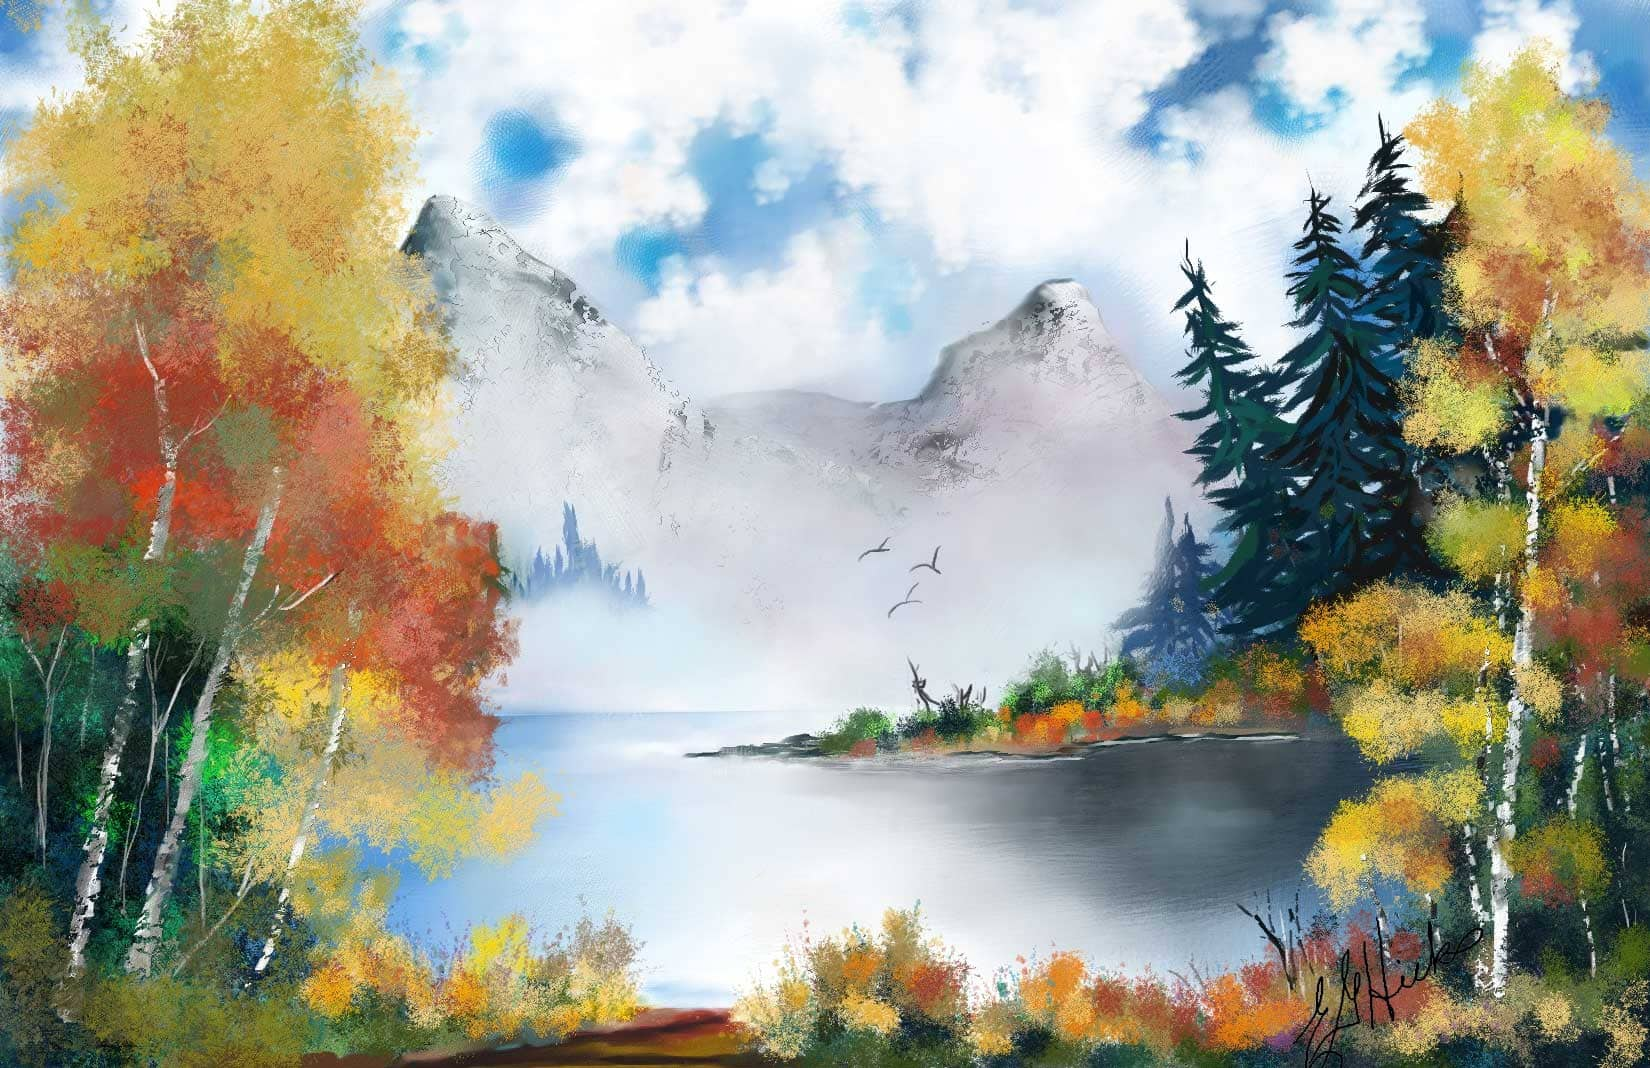 Digital Art Painting Software